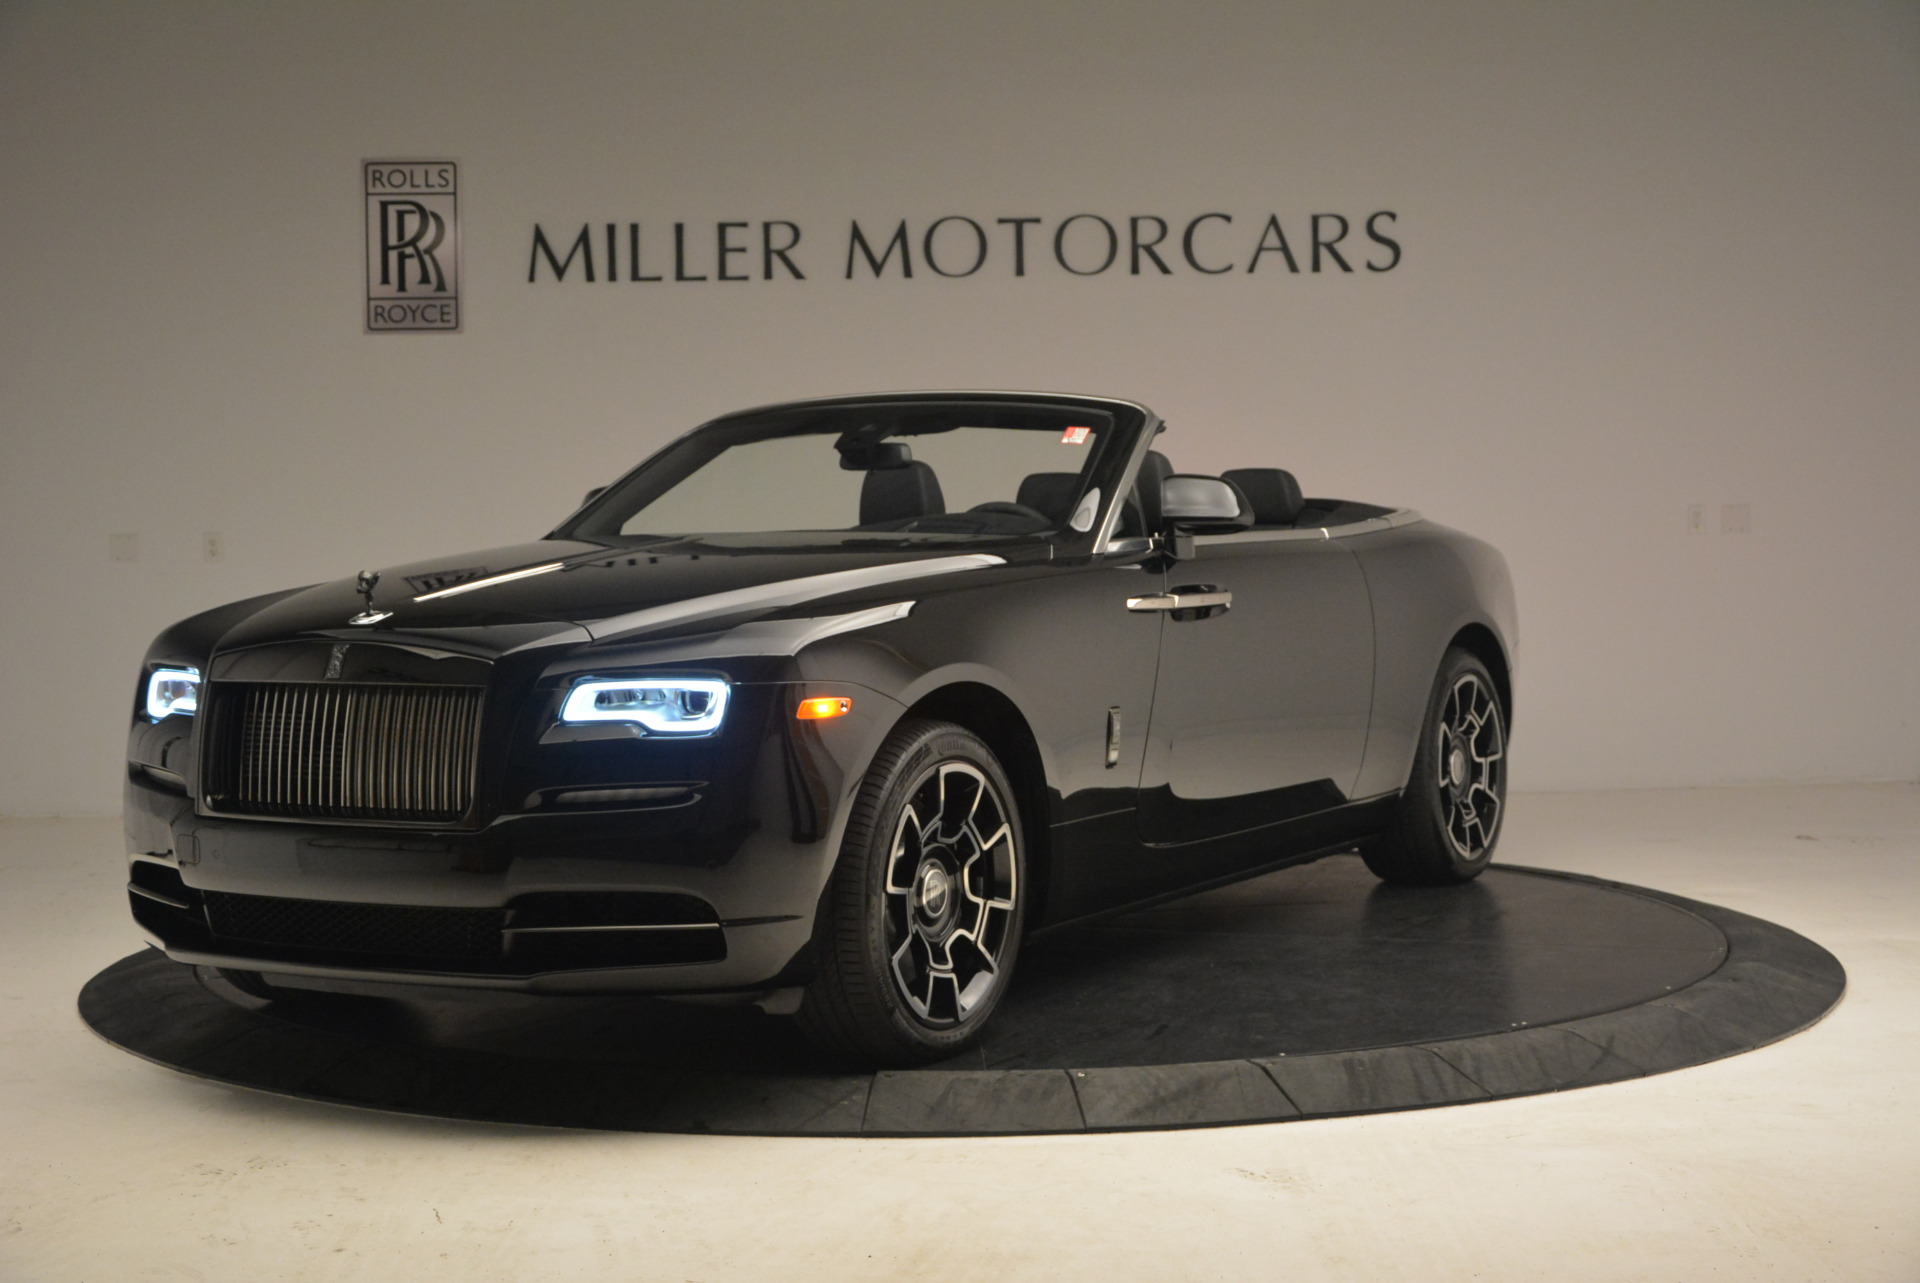 New 2018 Rolls-Royce Dawn Black Badge for sale Sold at Bentley Greenwich in Greenwich CT 06830 1